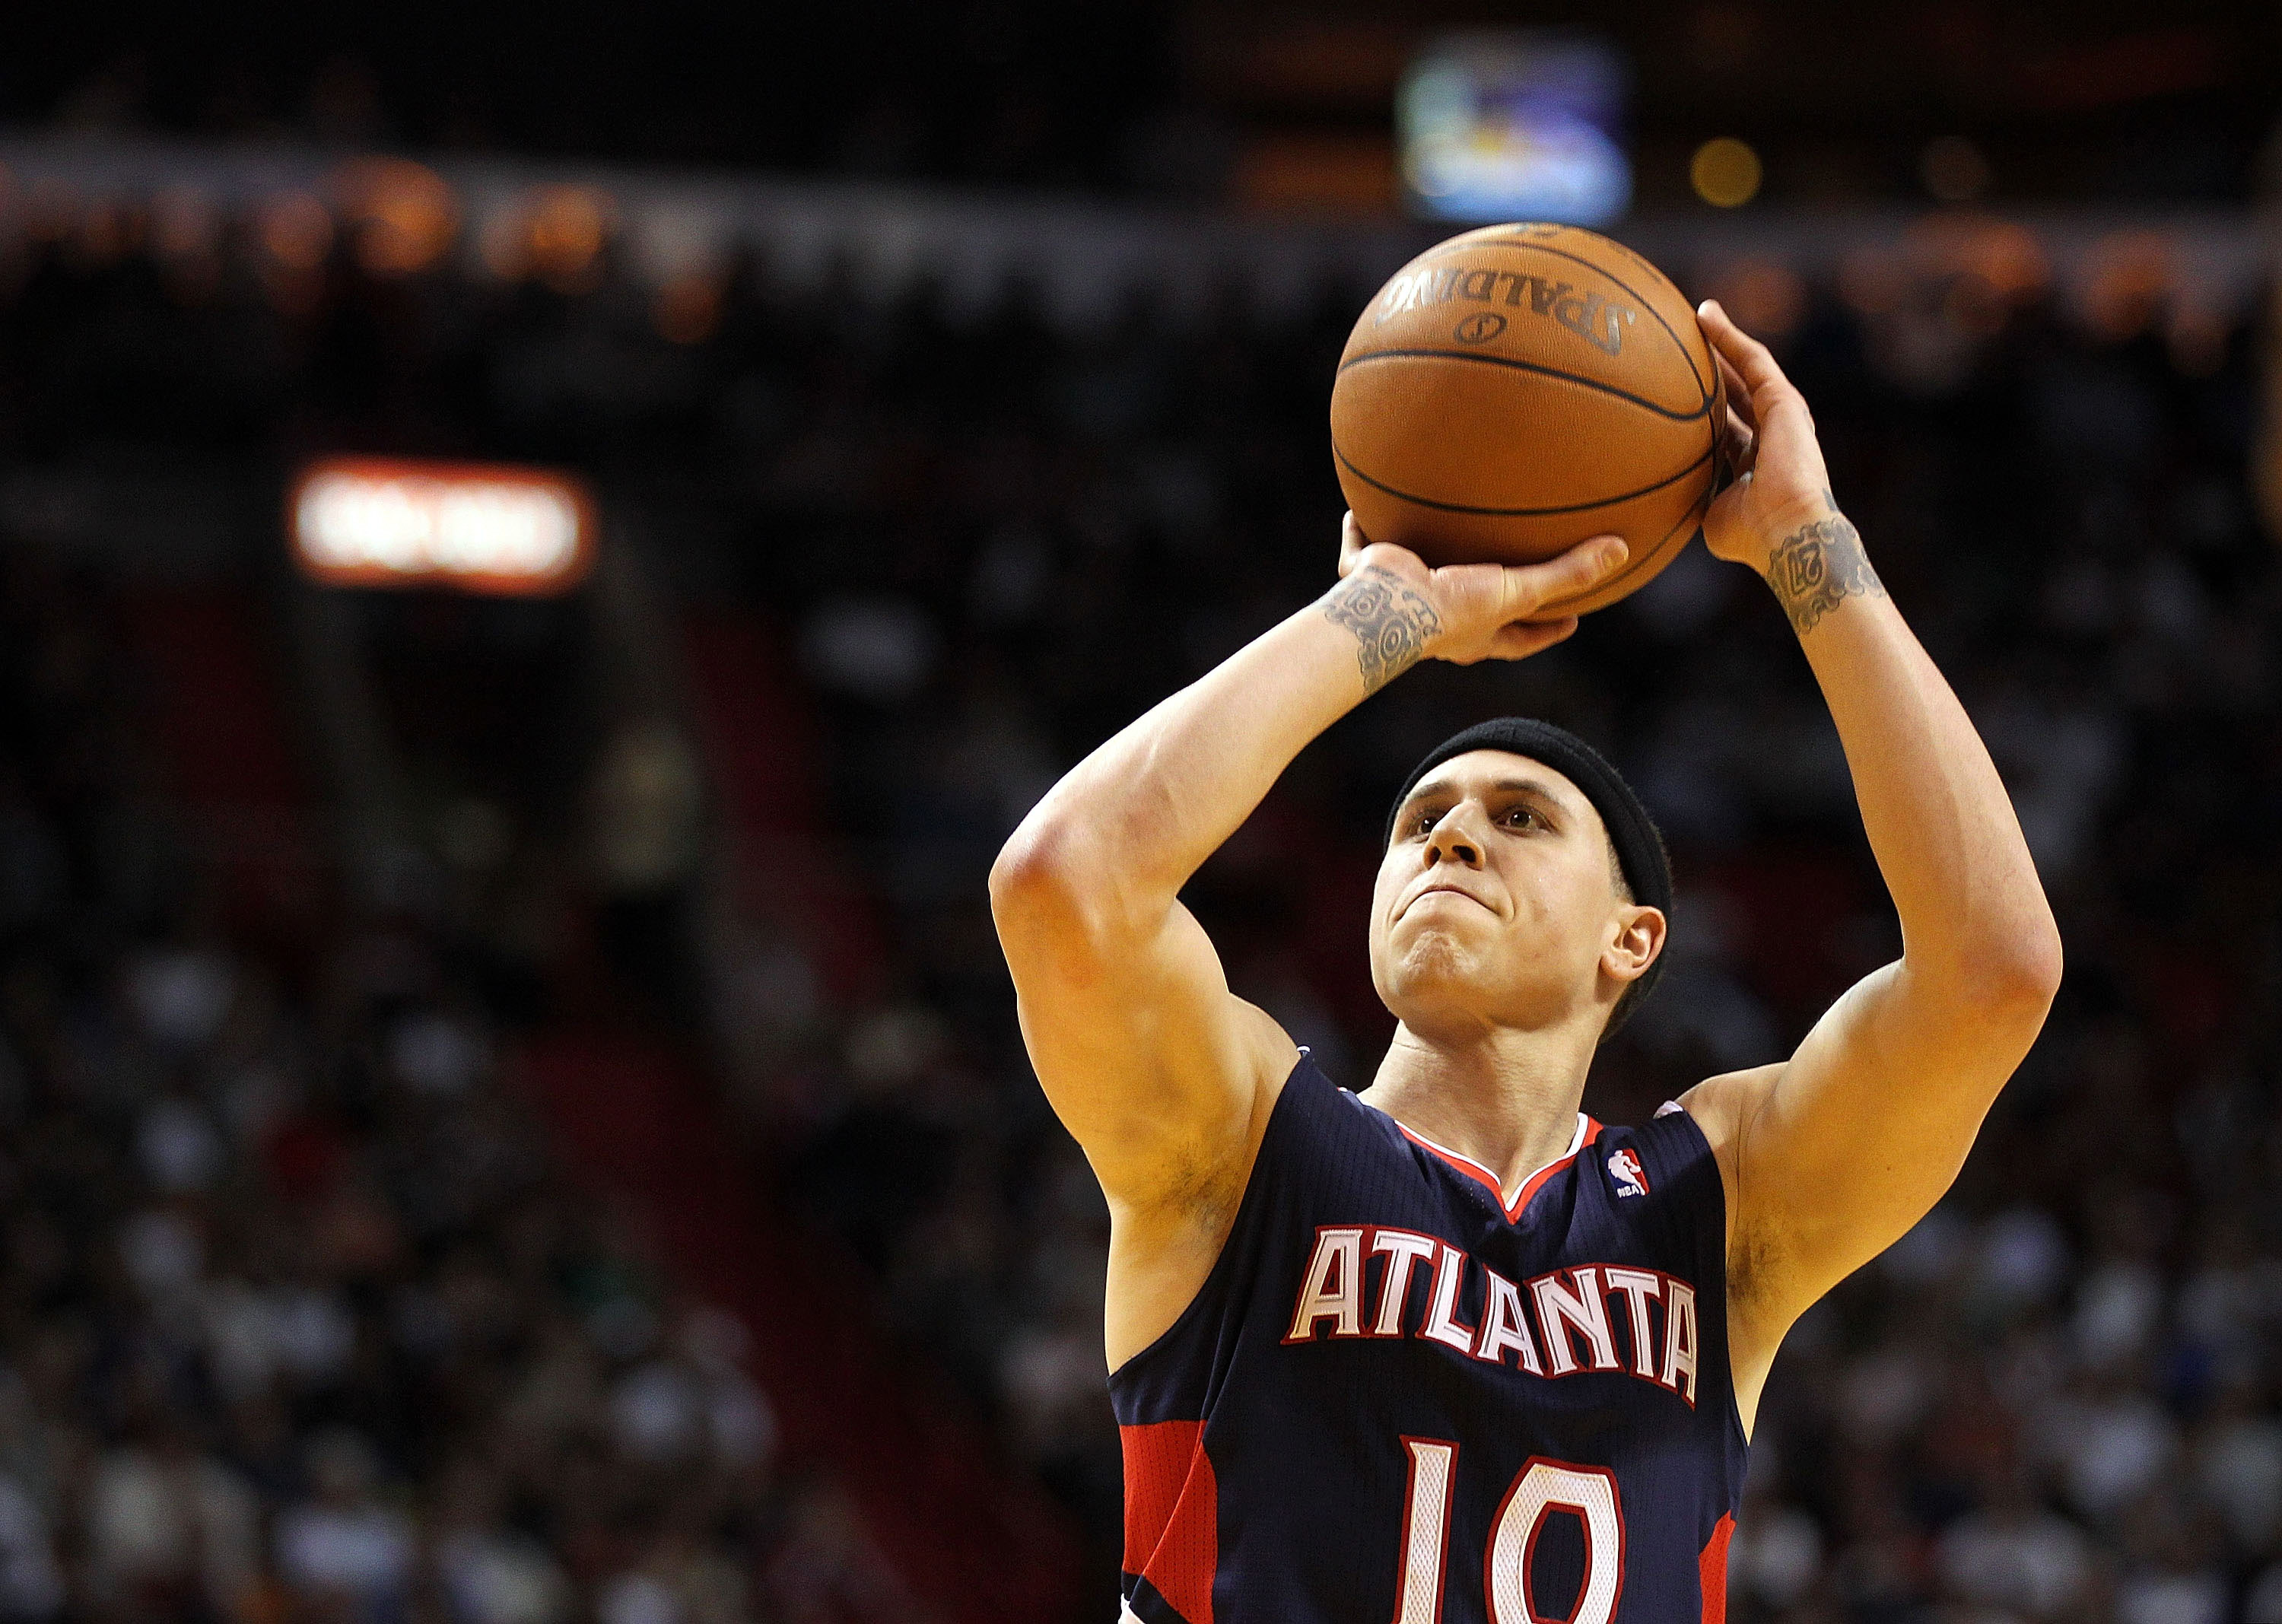 MIAMI, FL - JANUARY 18:  Mike Bibby #10 of the Atlanta Hawks shoots a free throw during a game against the Miami Heat at American Airlines Arena on January 18, 2011 in Miami, Florida. NOTE TO USER: User expressly acknowledges and agrees that, by downloadi